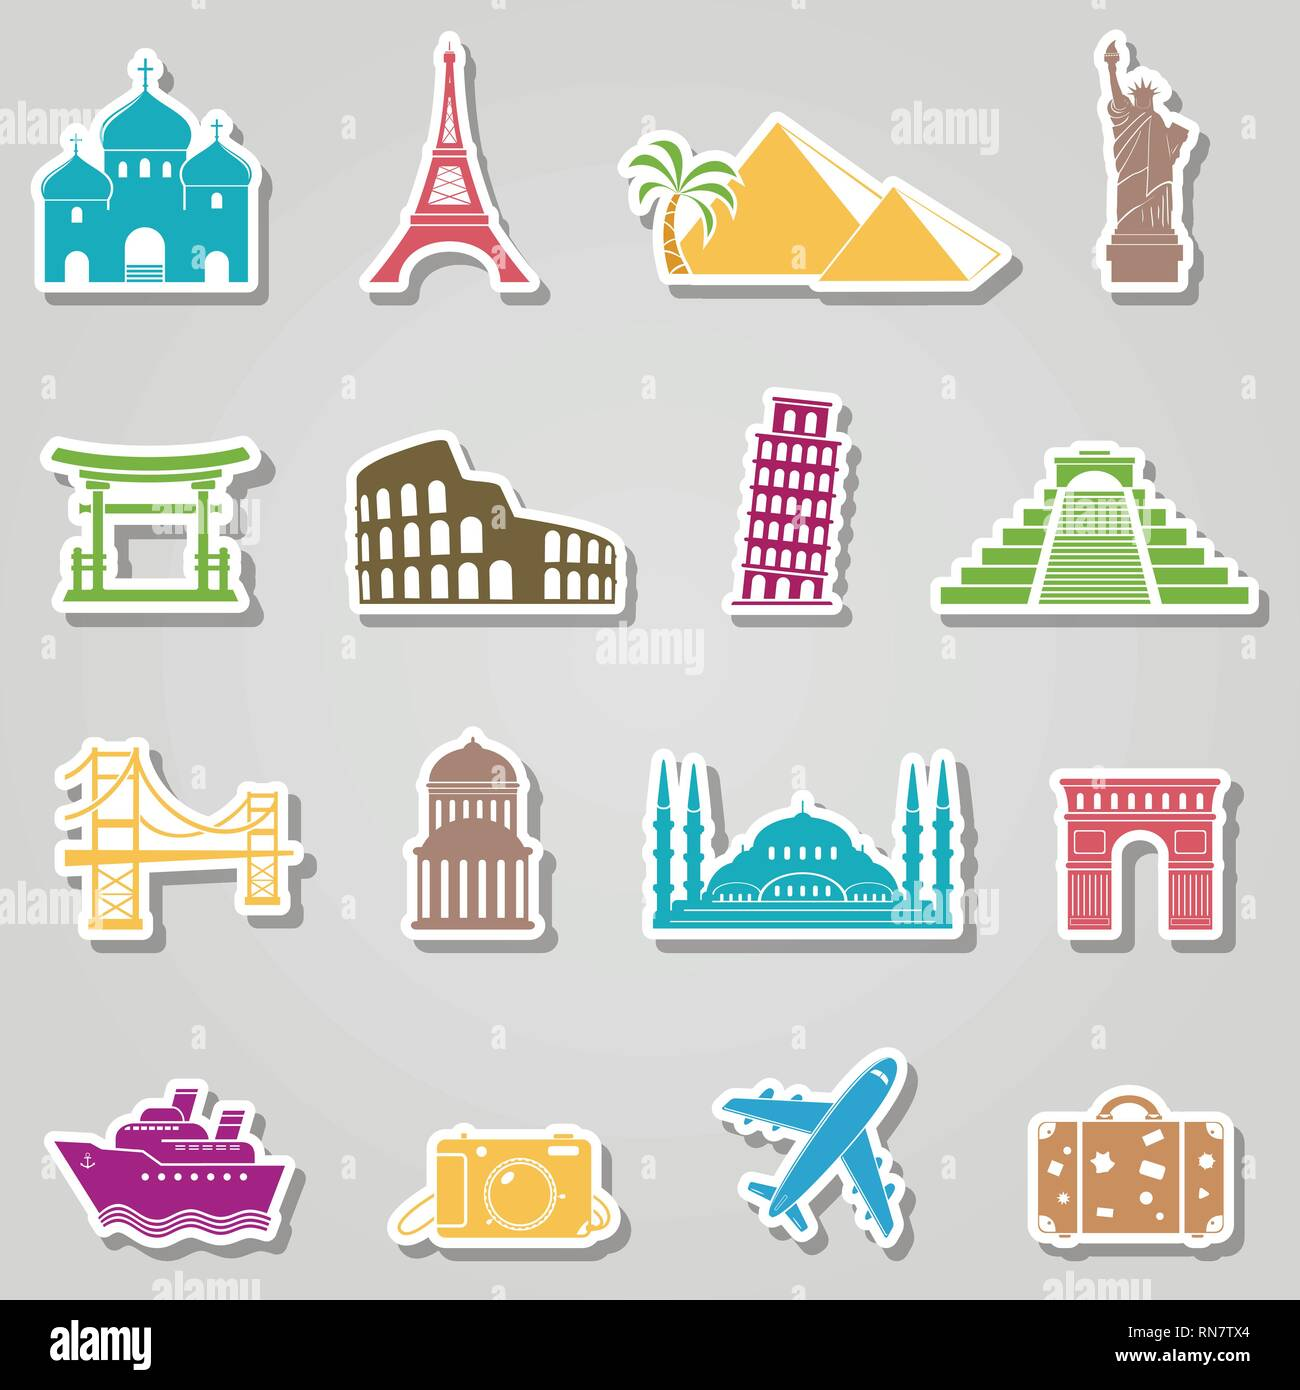 Landmarks stickers on grey background - Stock Vector